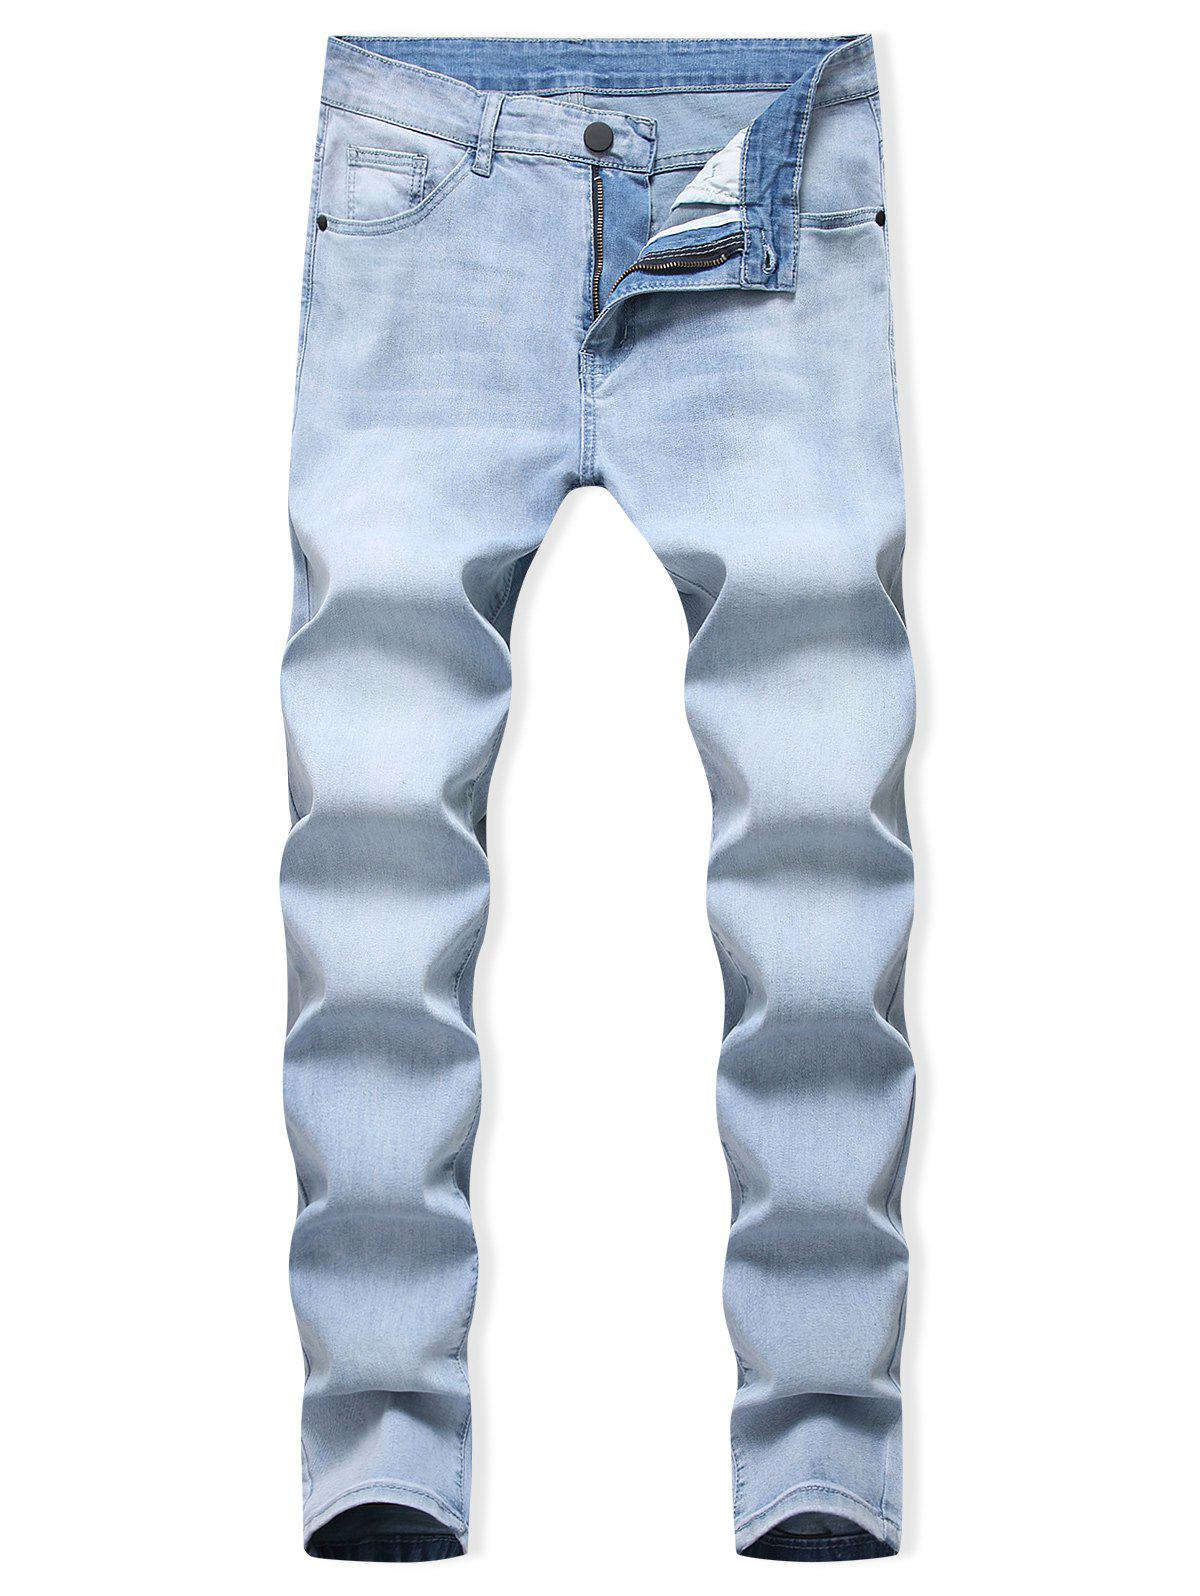 Store Light Wash Zipper Fly Casual Jeans